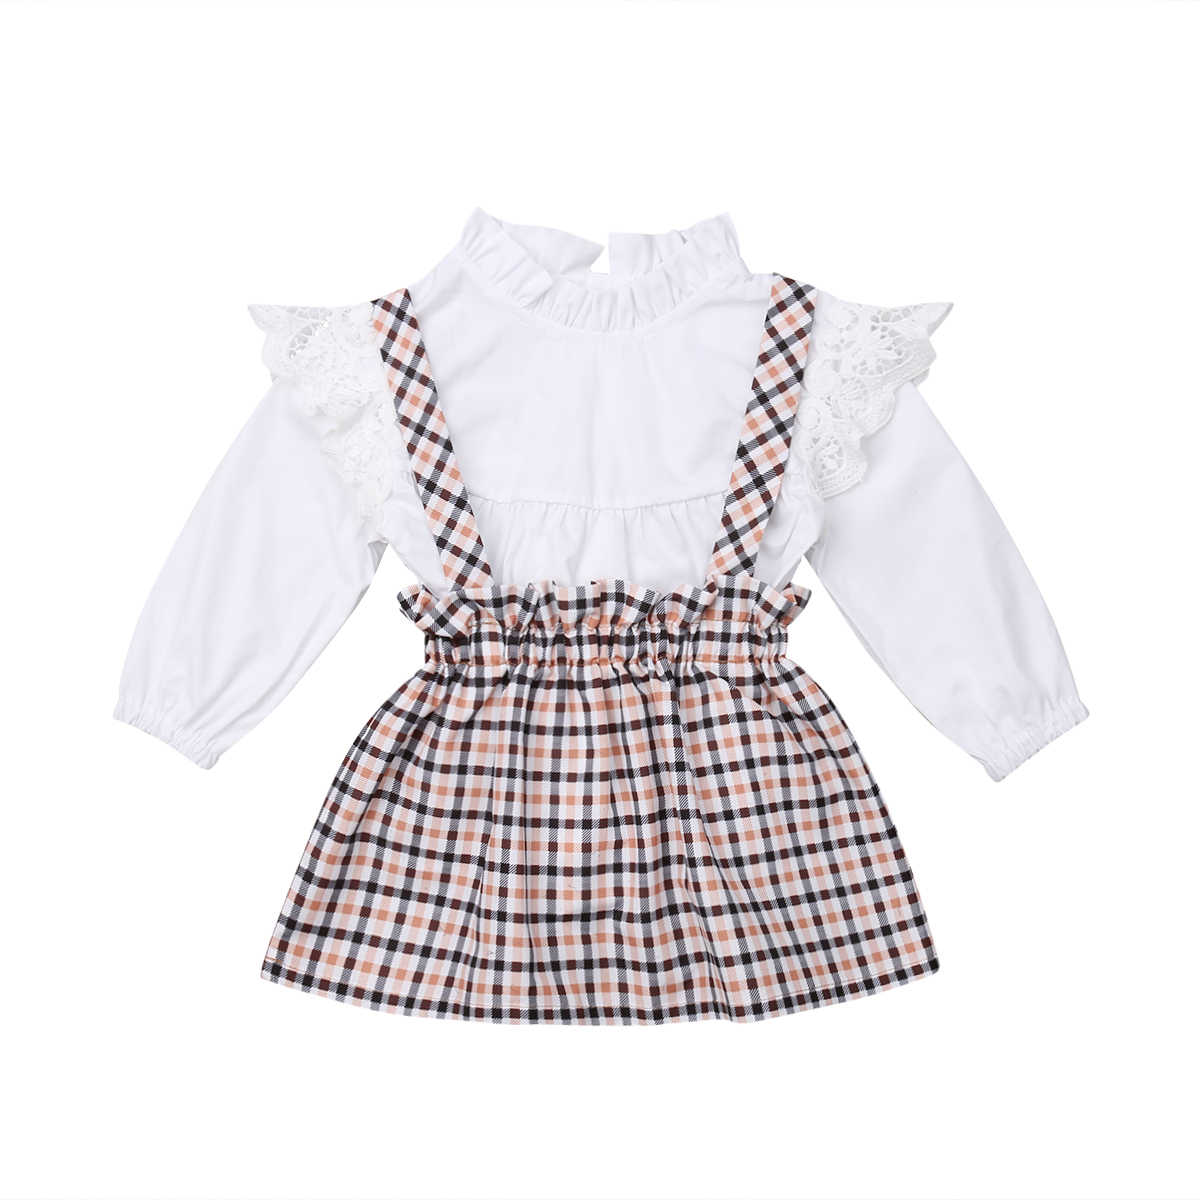 16b26c74a883 Detail Feedback Questions about 2PCS Toddler Kids Baby Girl Long ...